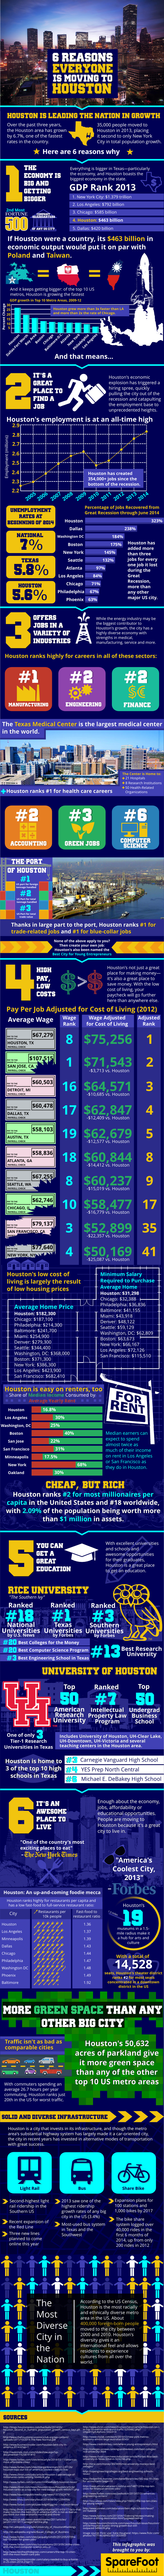 moving-to-houston-infographic